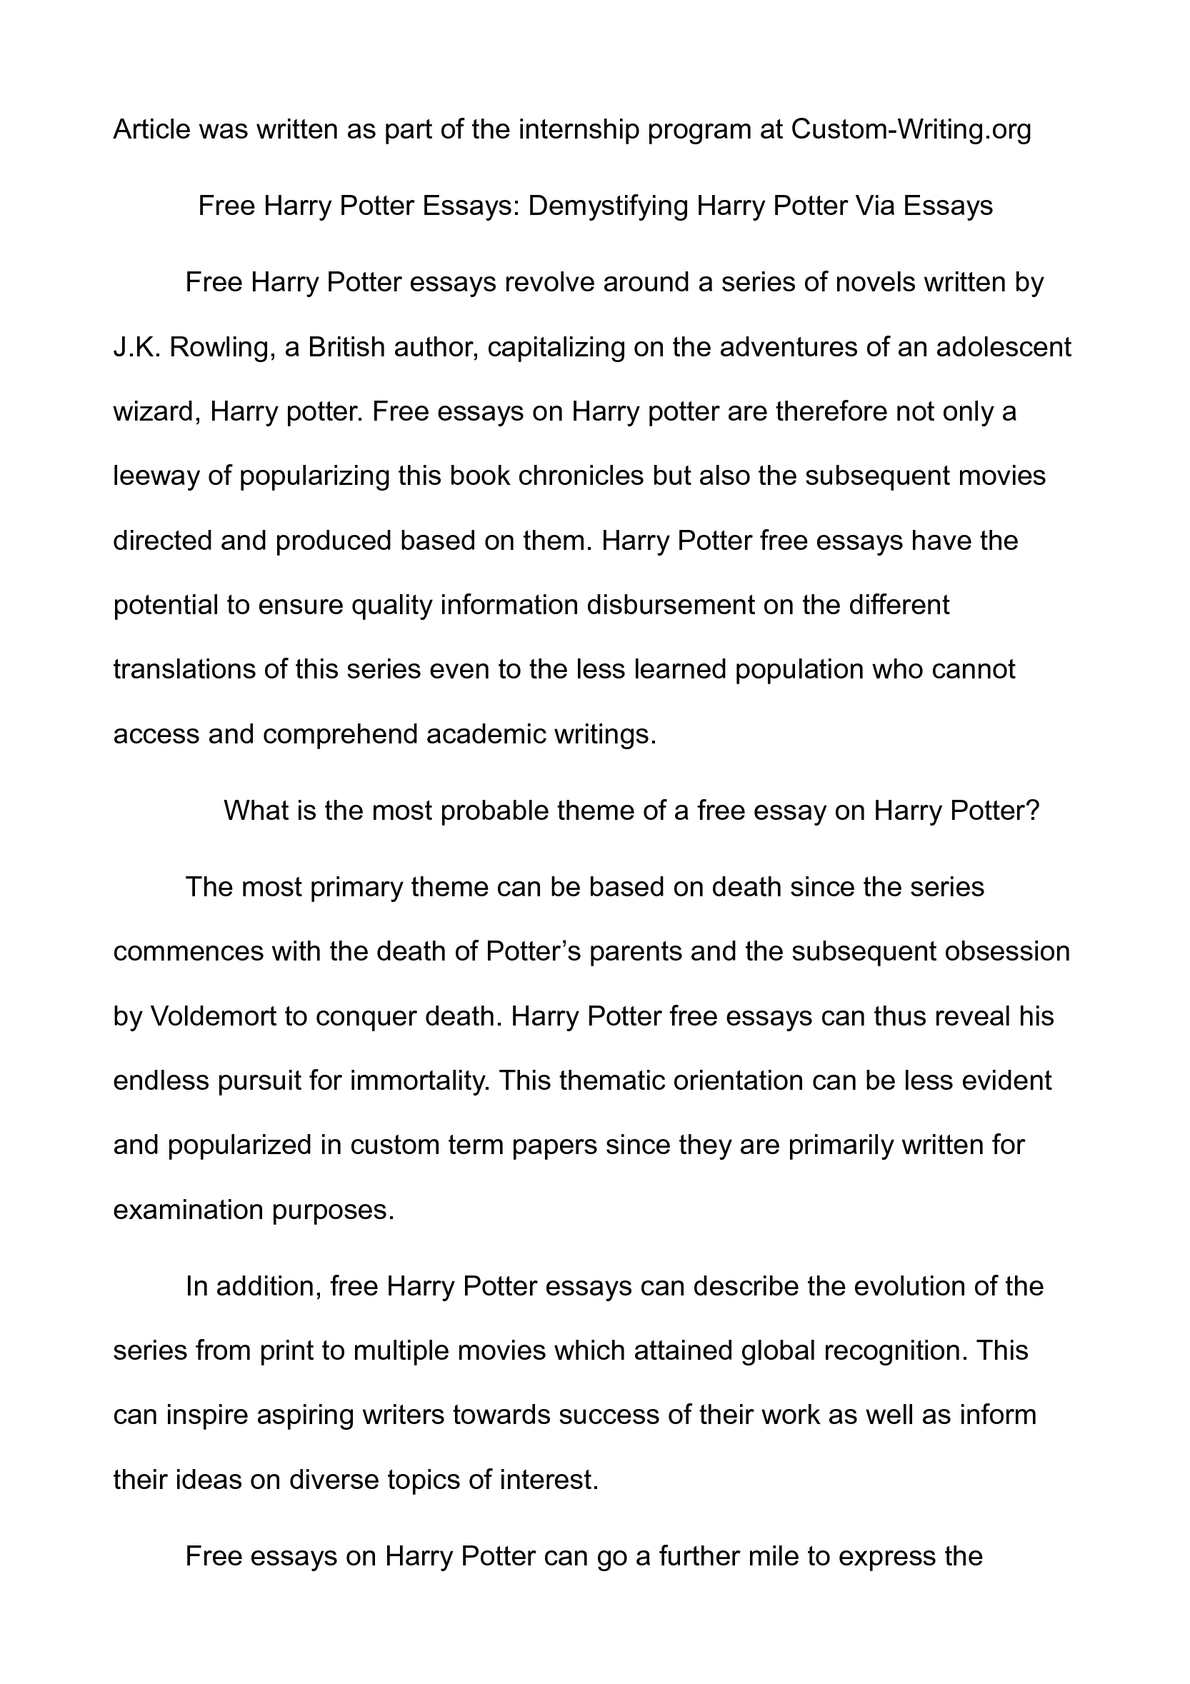 Calamo  Free Harry Potter Essays Demystifying Harry Potter Via Essays  Untraceable Speeches For Sale also Narrative Essay Thesis  High School Vs College Essay Compare And Contrast